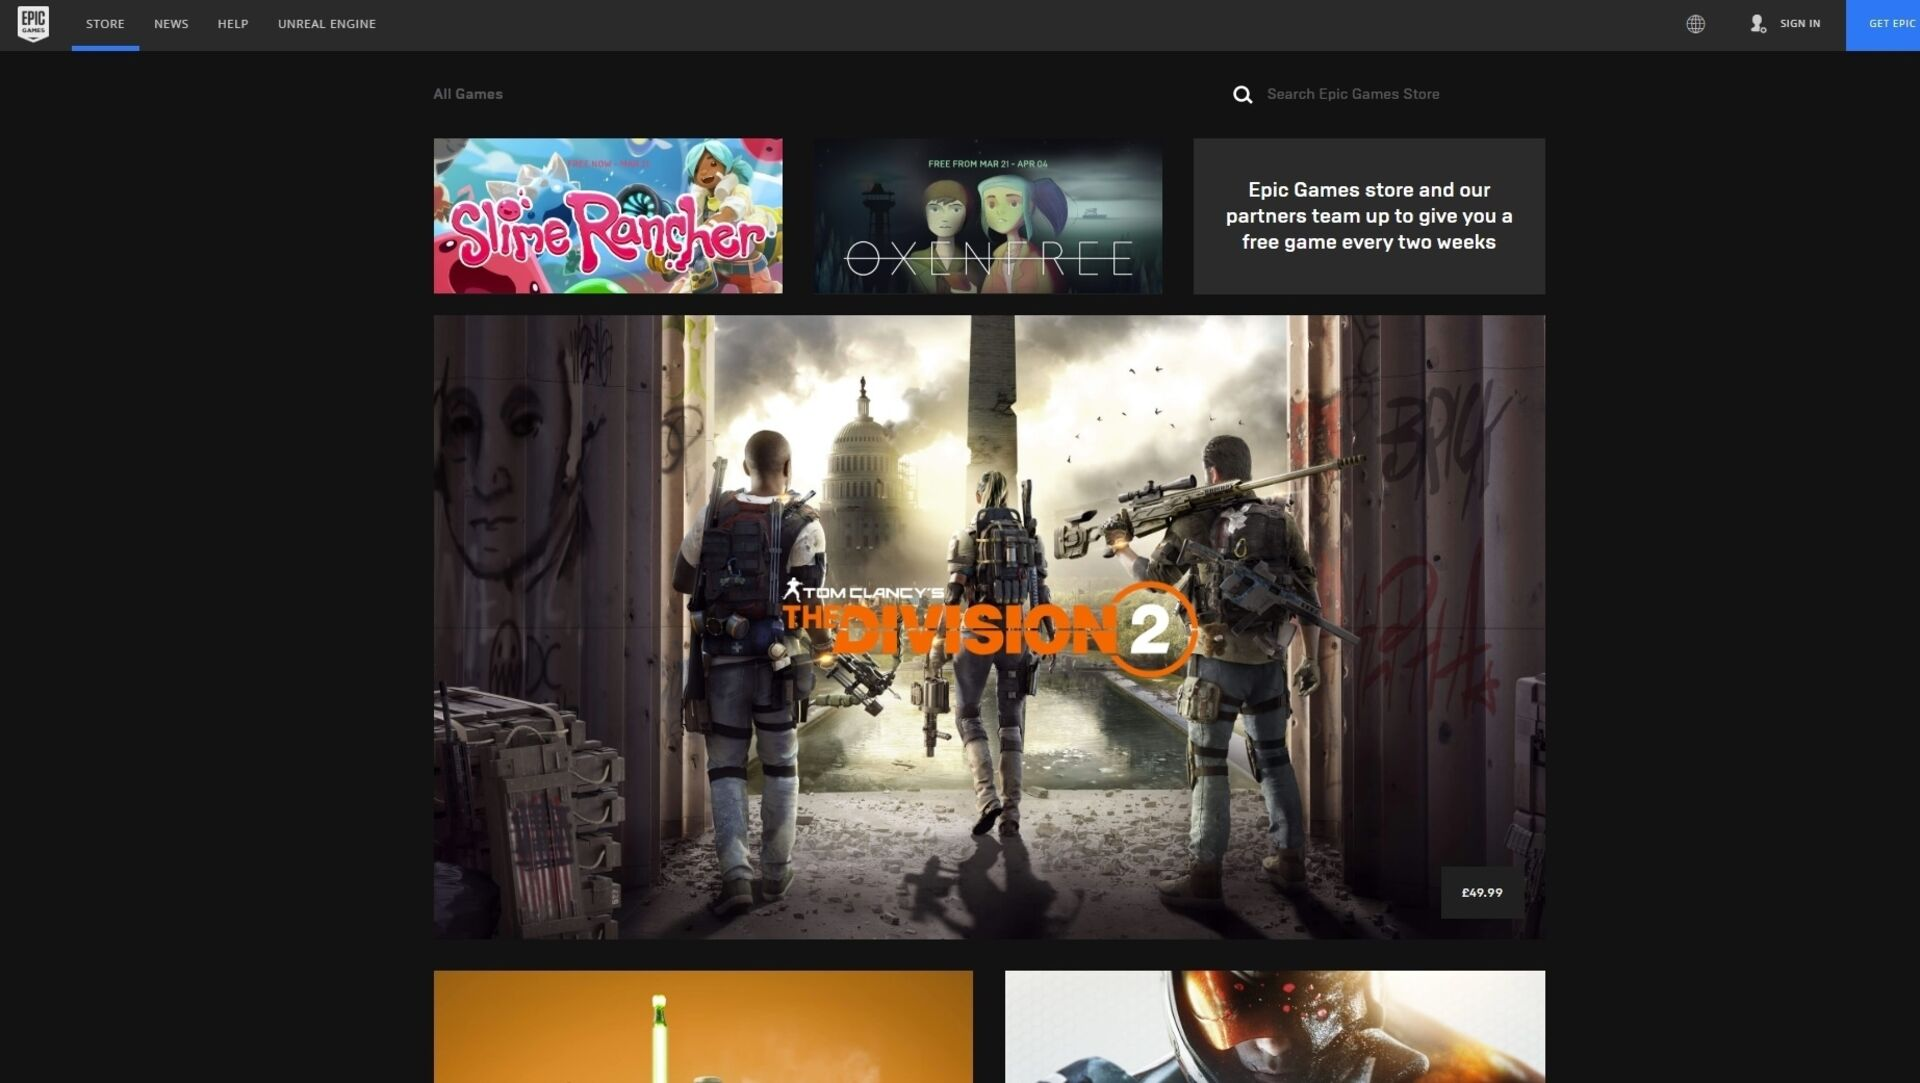 Epic responds to accusations its launcher accesses Steam